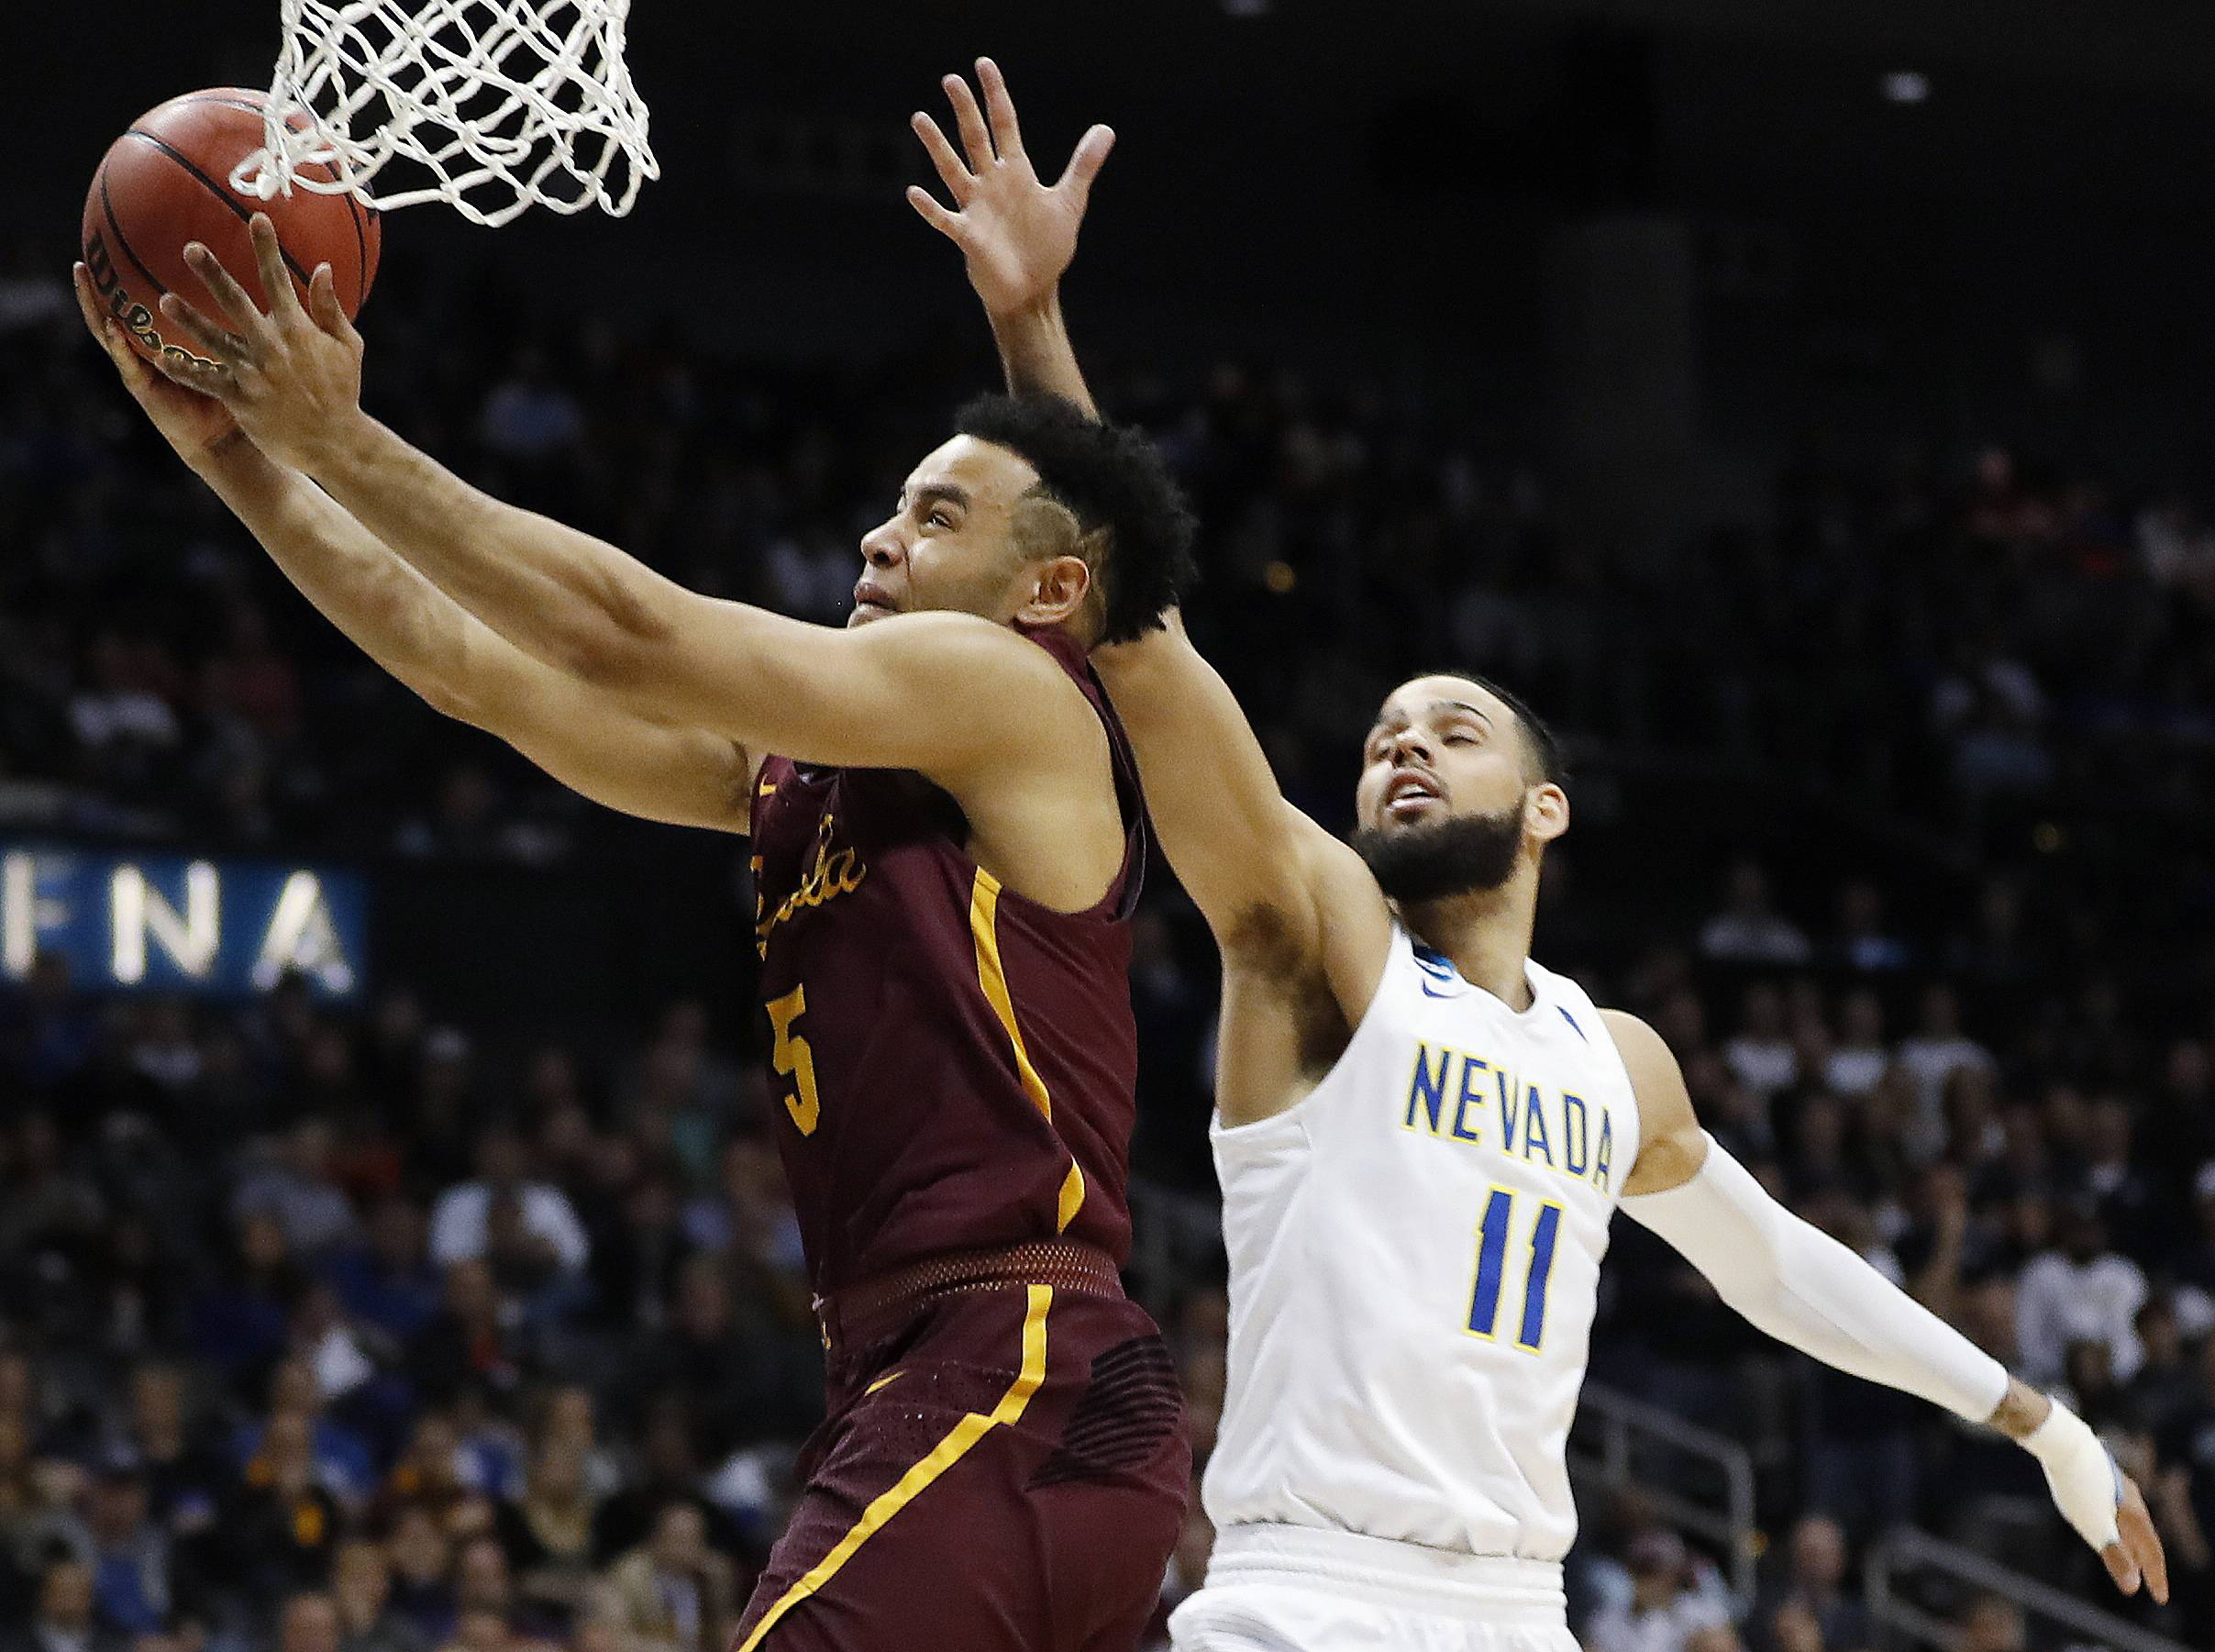 Loyola guard Marques Townes (5) moves to the hoop as Nevada forward Cody Martin (11) defends during the second half Thursday, in Atlanta.